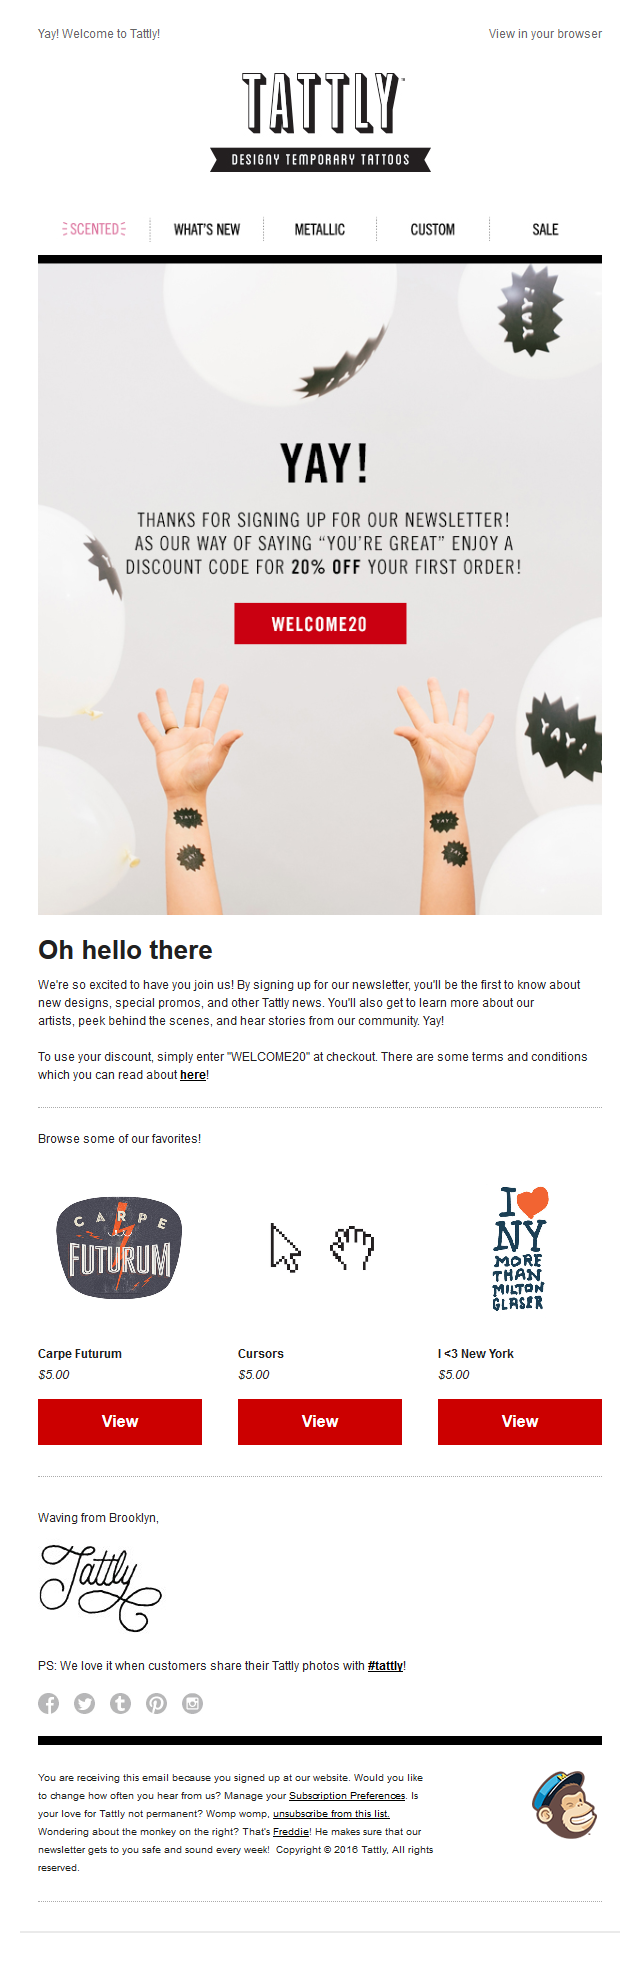 Tattly - Welcome!